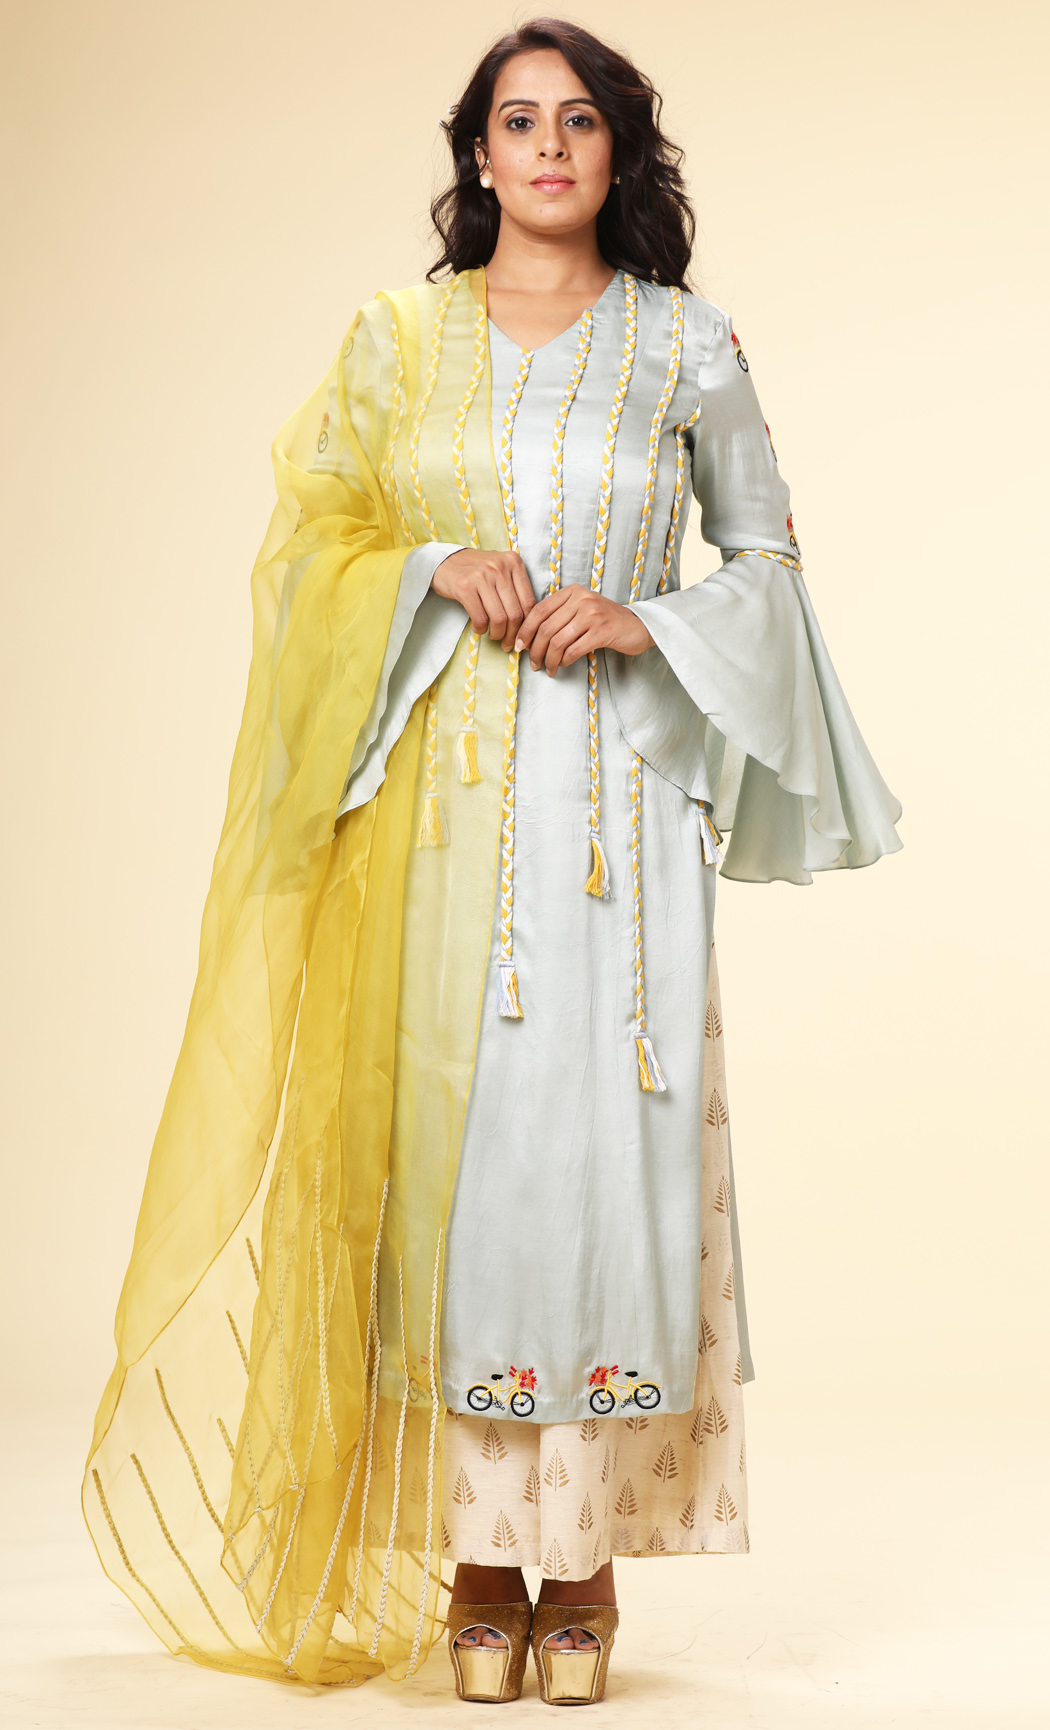 Powder Blue Bell Sleeves Kurta with a Yellow Dupatta and Pants - Buy Online